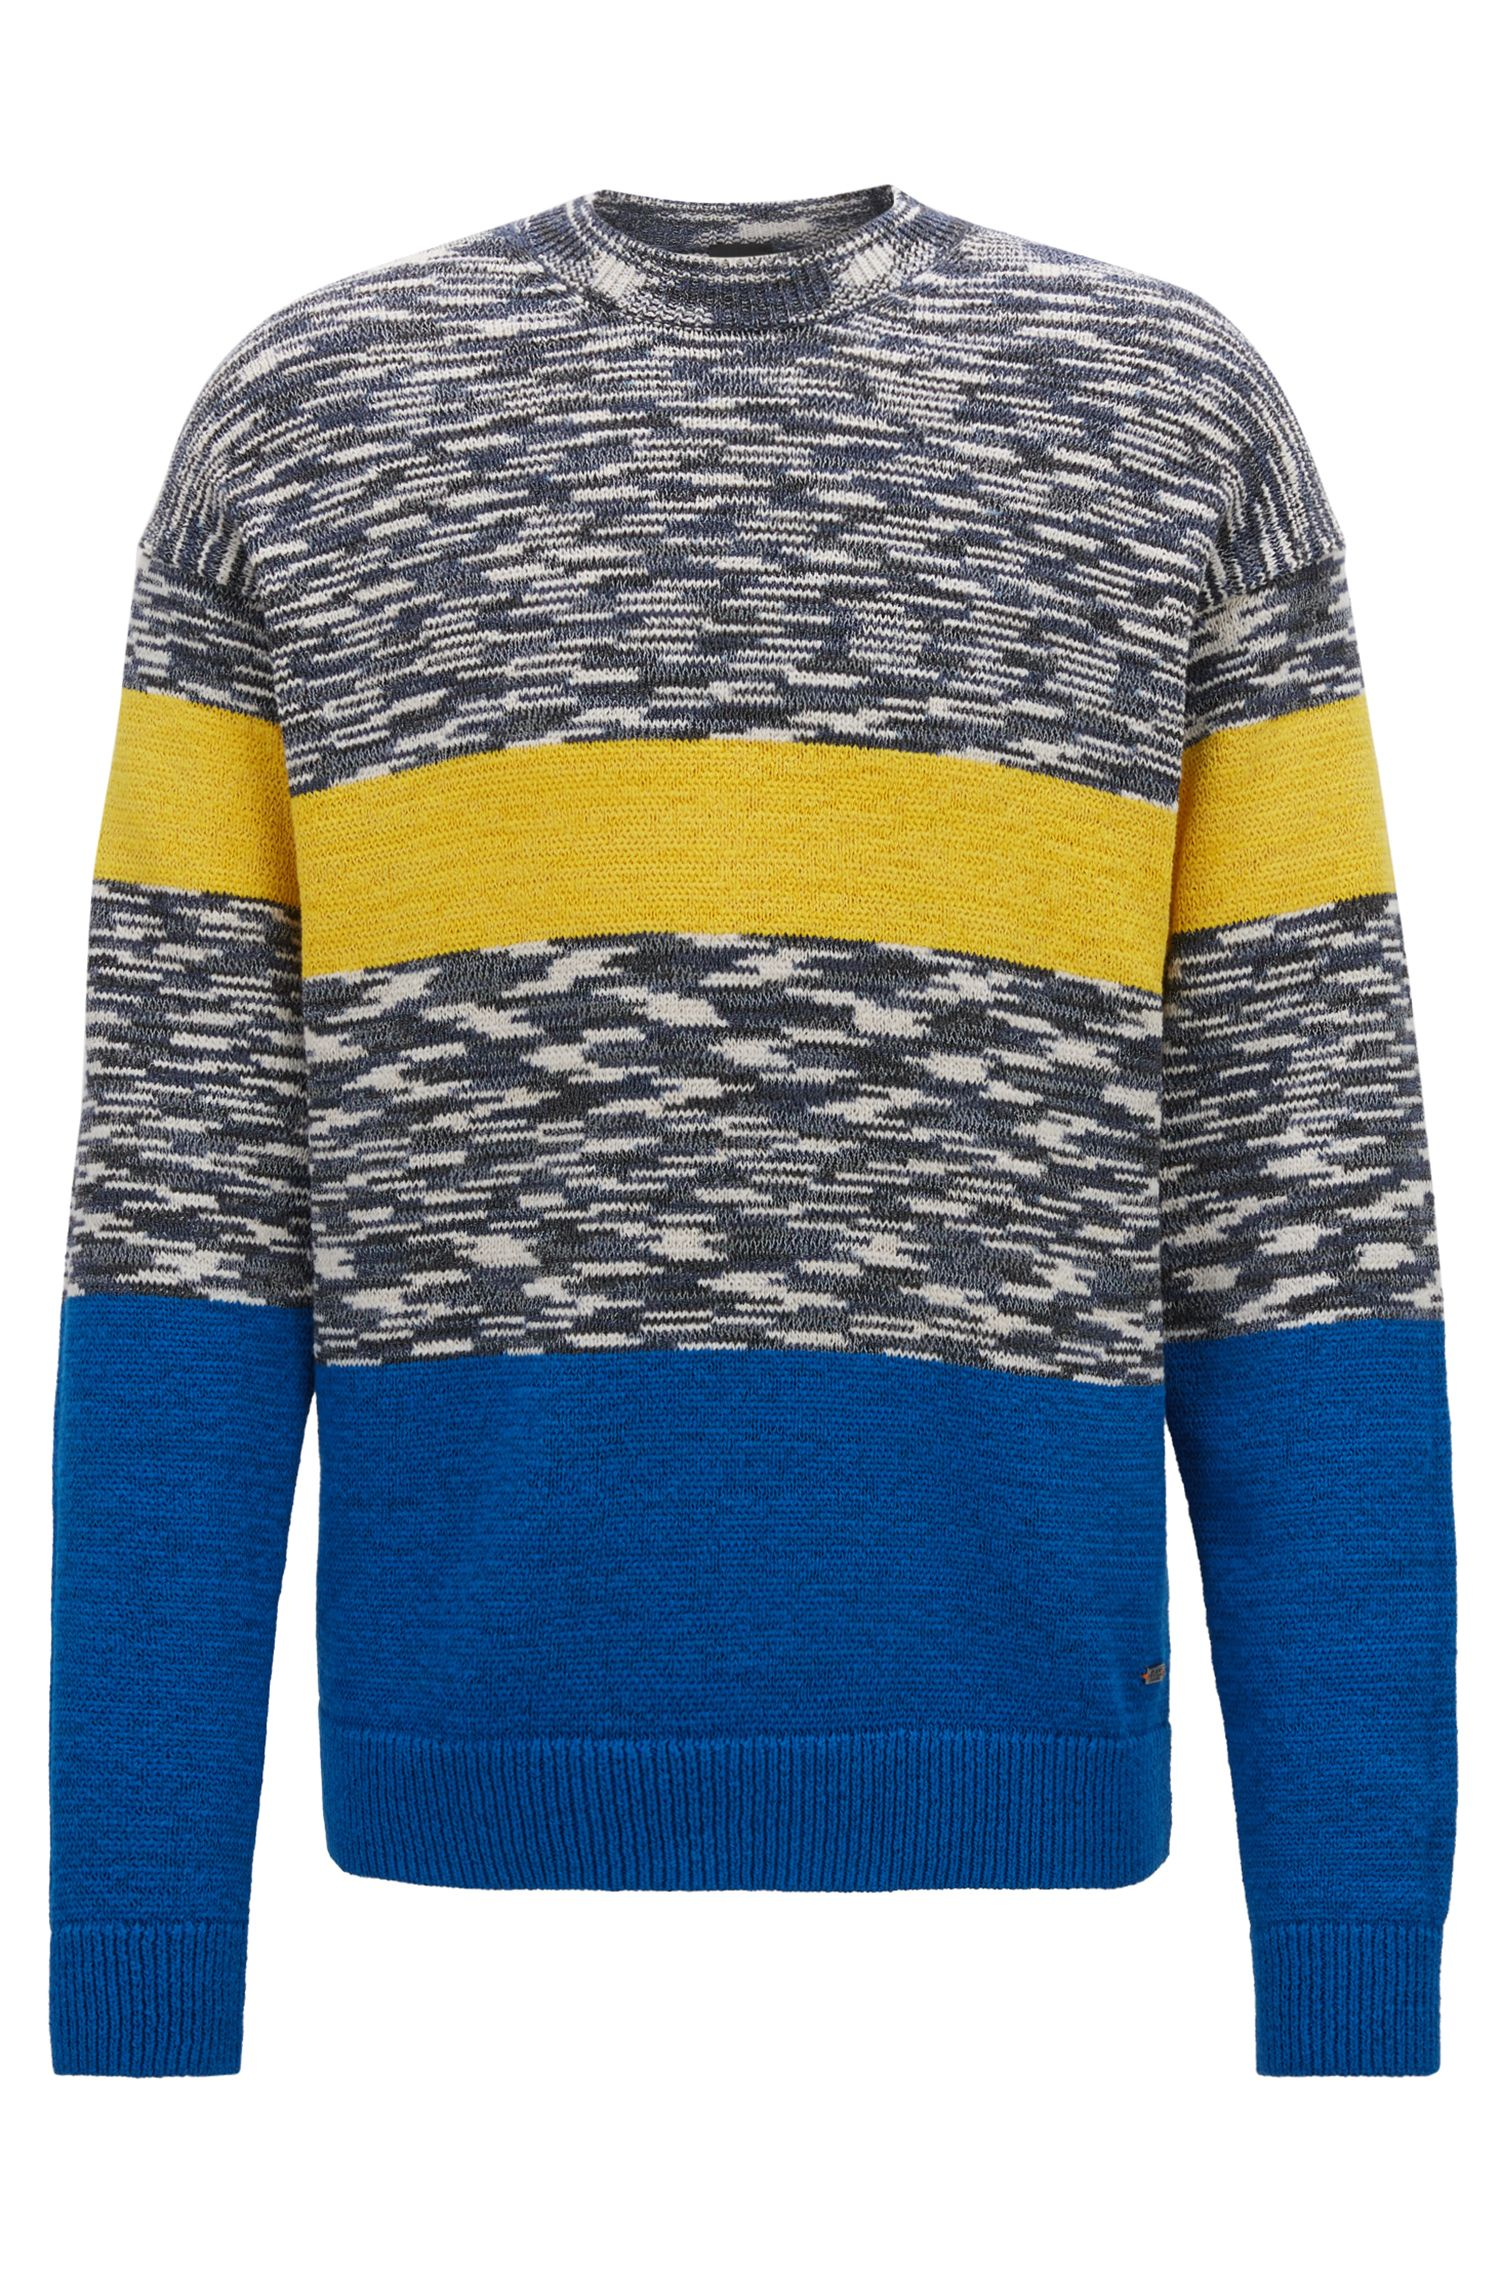 Pullover aus meliertem Baumwoll-Mix in Colour-Block-Optik